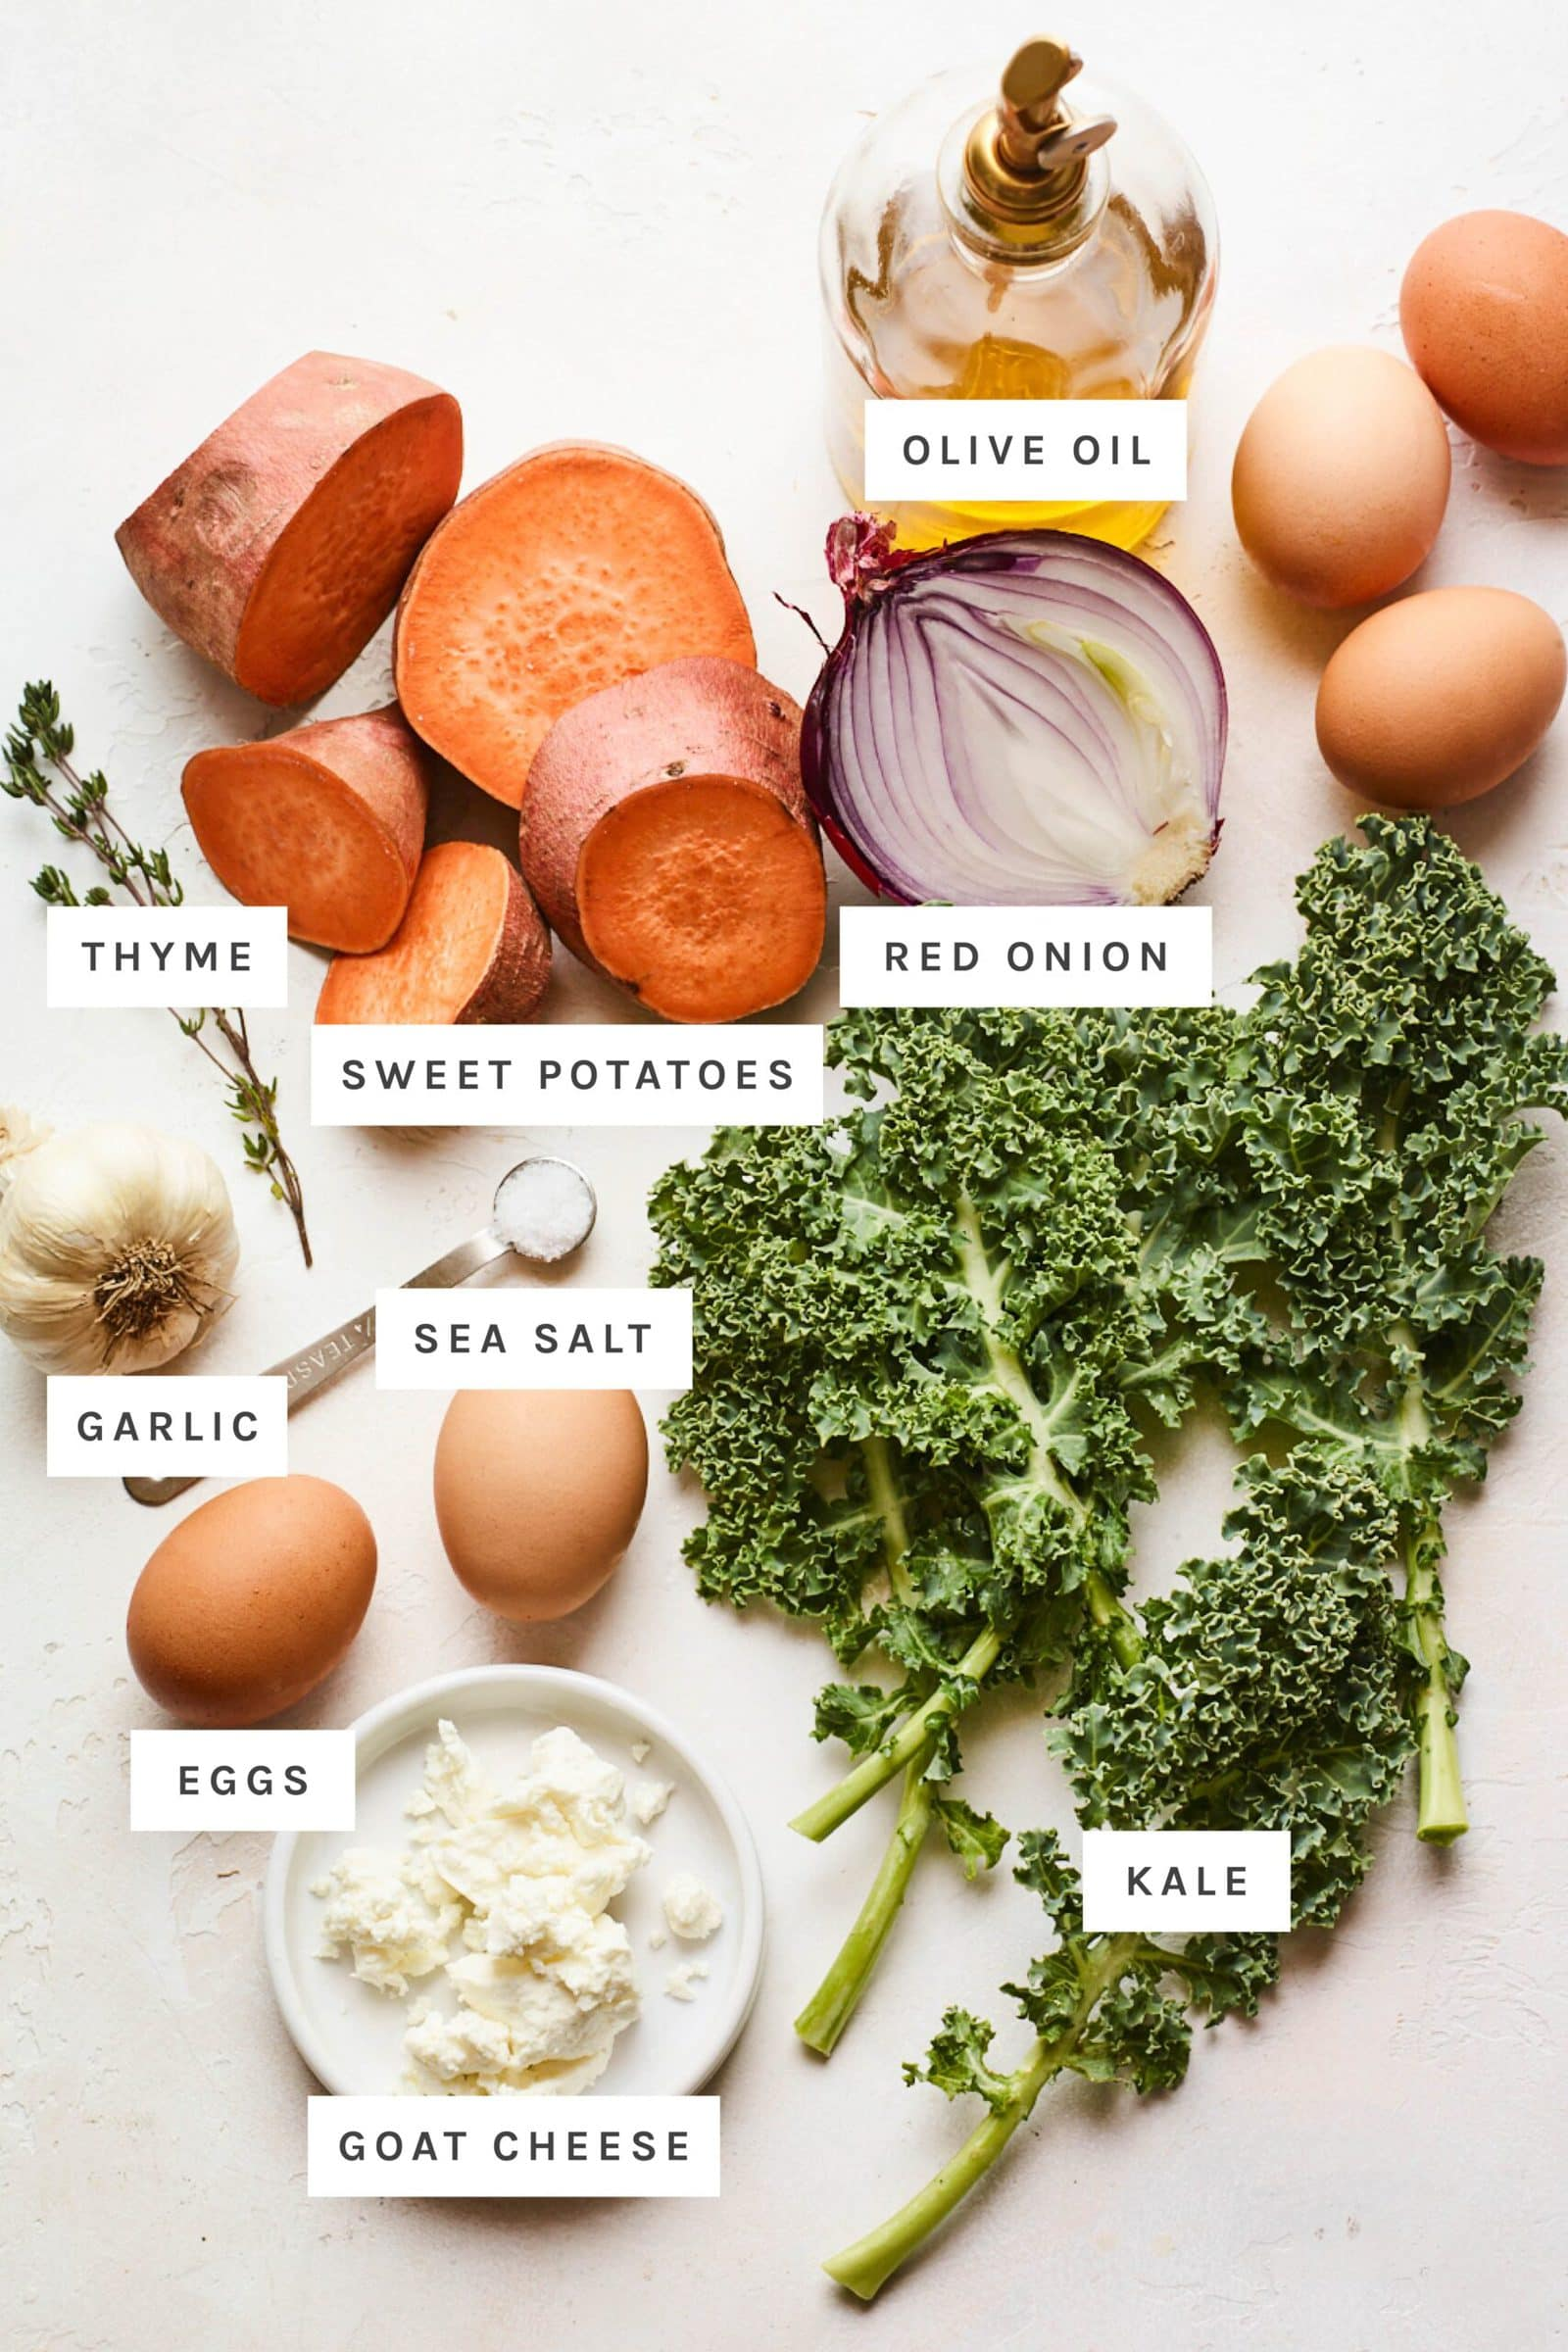 Ingredients to make a sweet potato kale frittata on a table measured out.